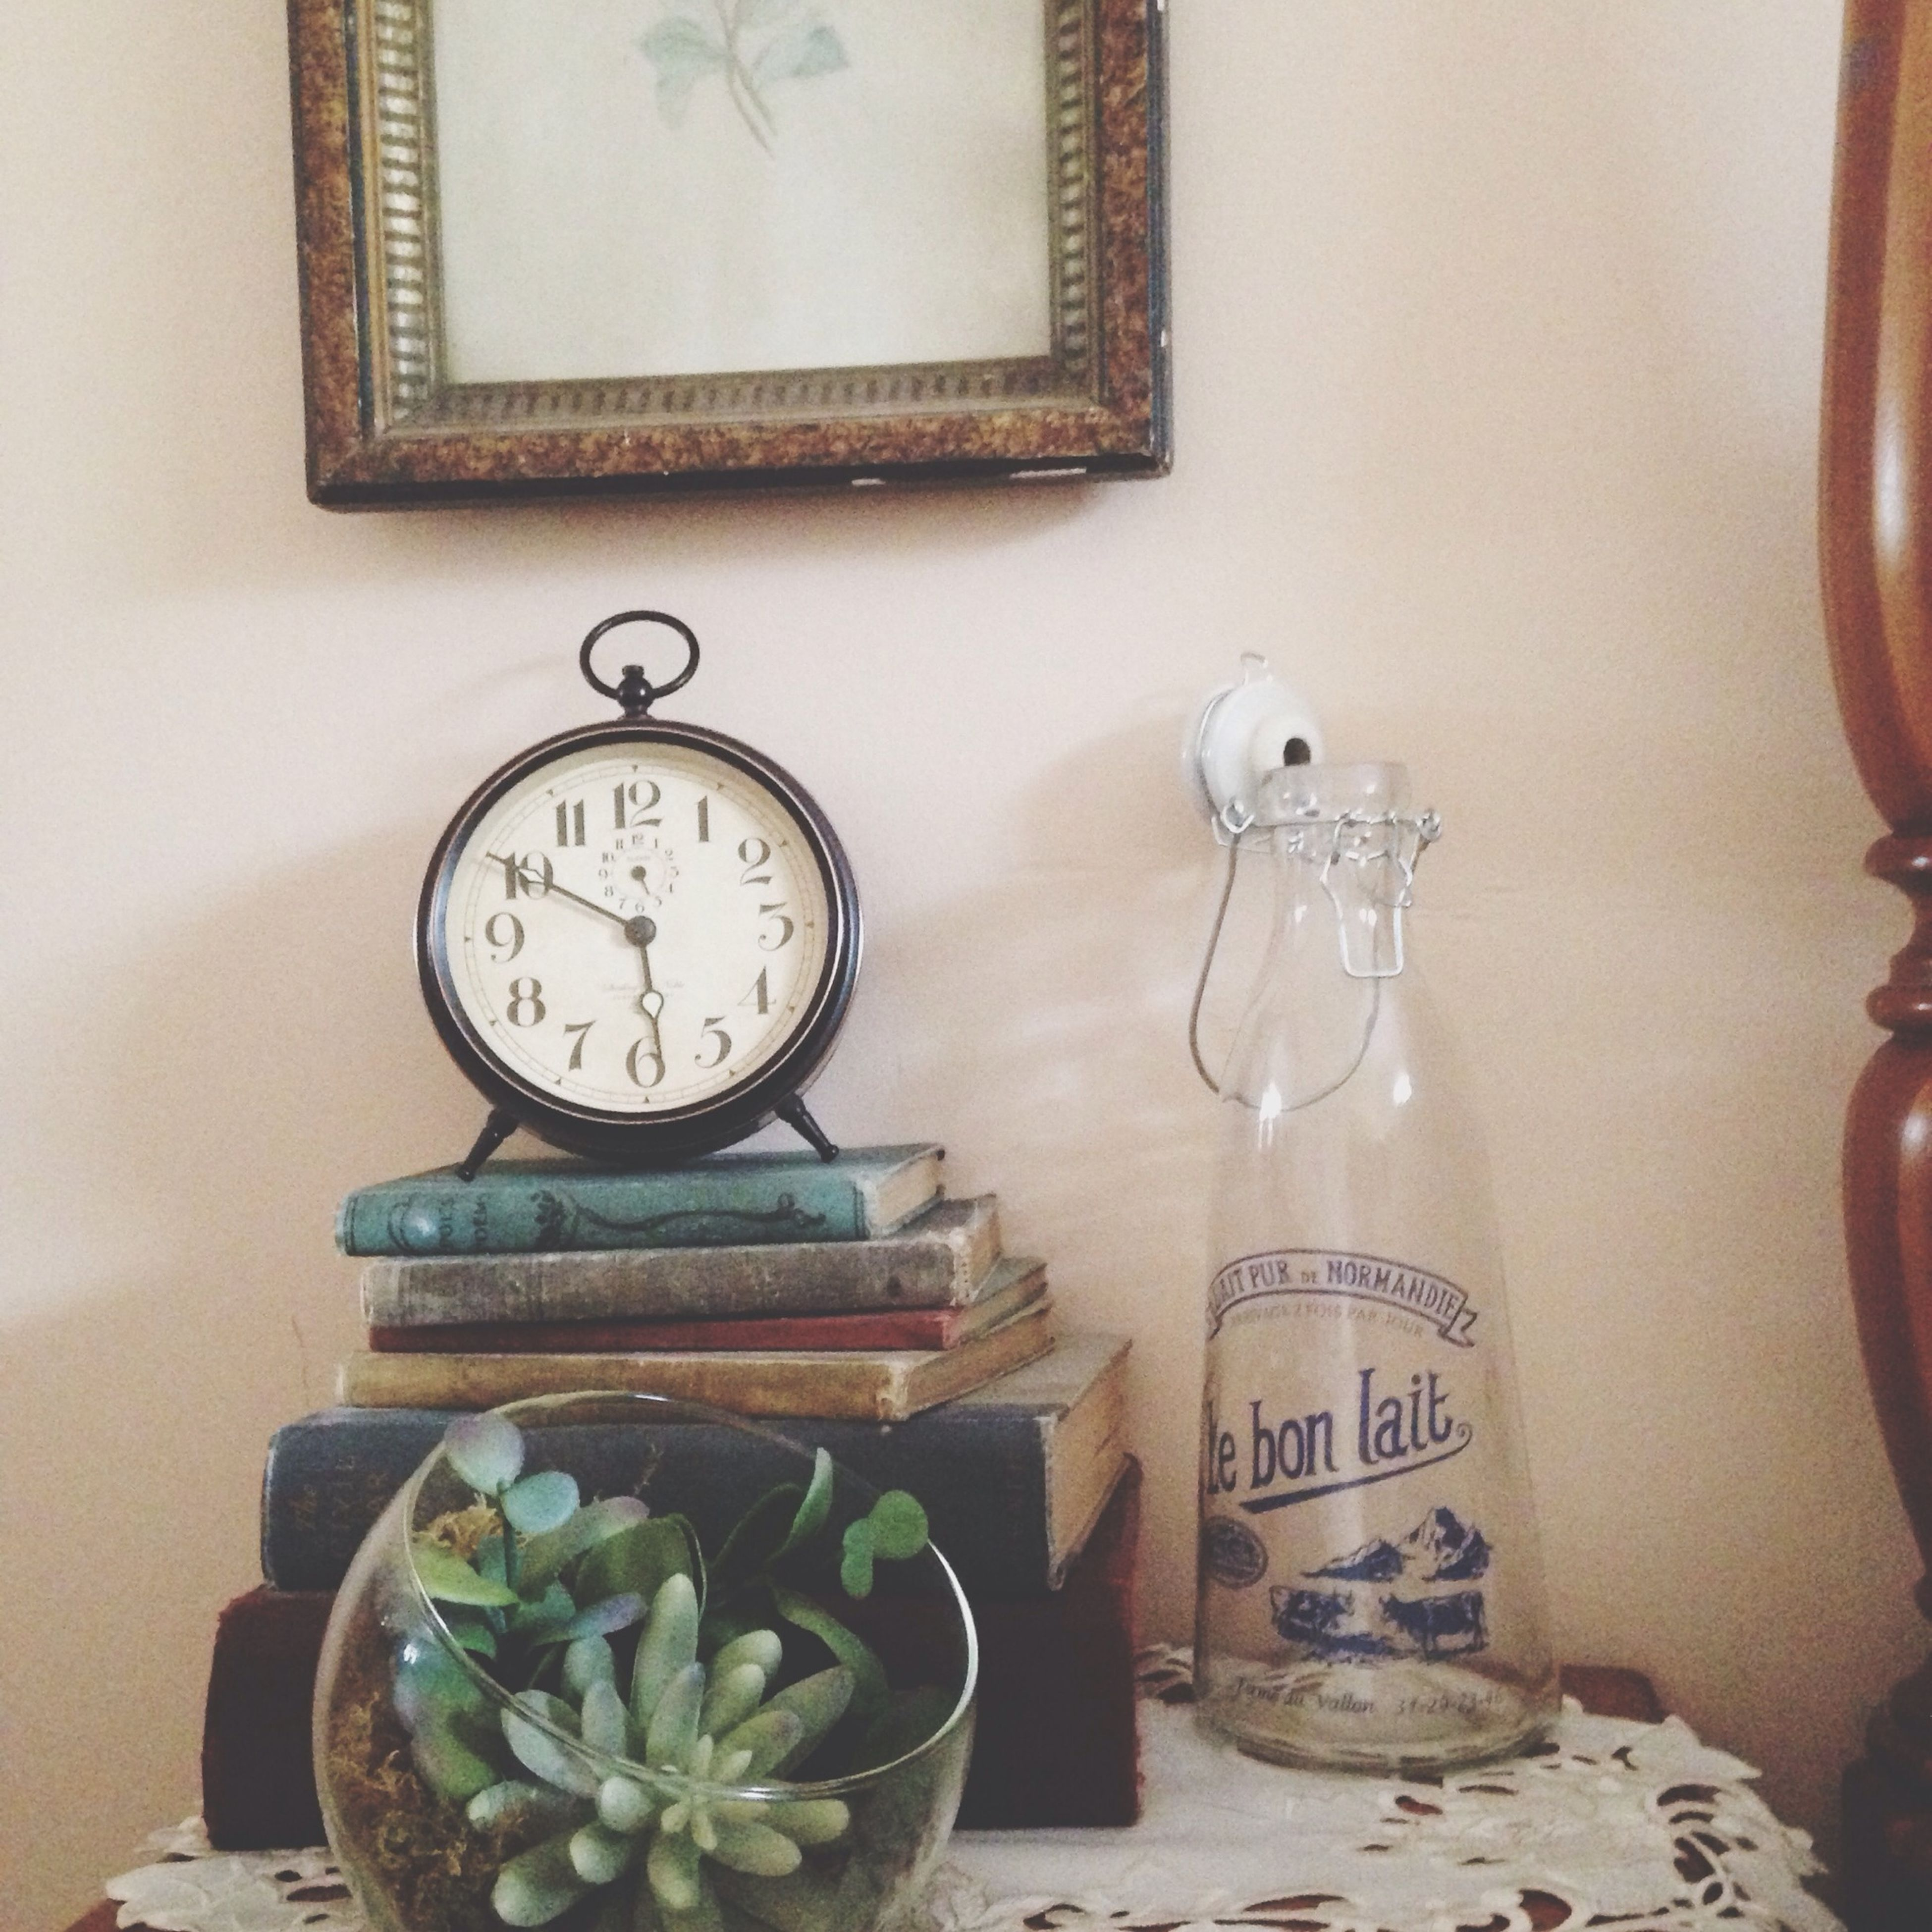 indoors, clock, time, table, communication, old-fashioned, still life, retro styled, antique, text, number, home interior, technology, wall - building feature, no people, close-up, old, wood - material, clock face, accuracy